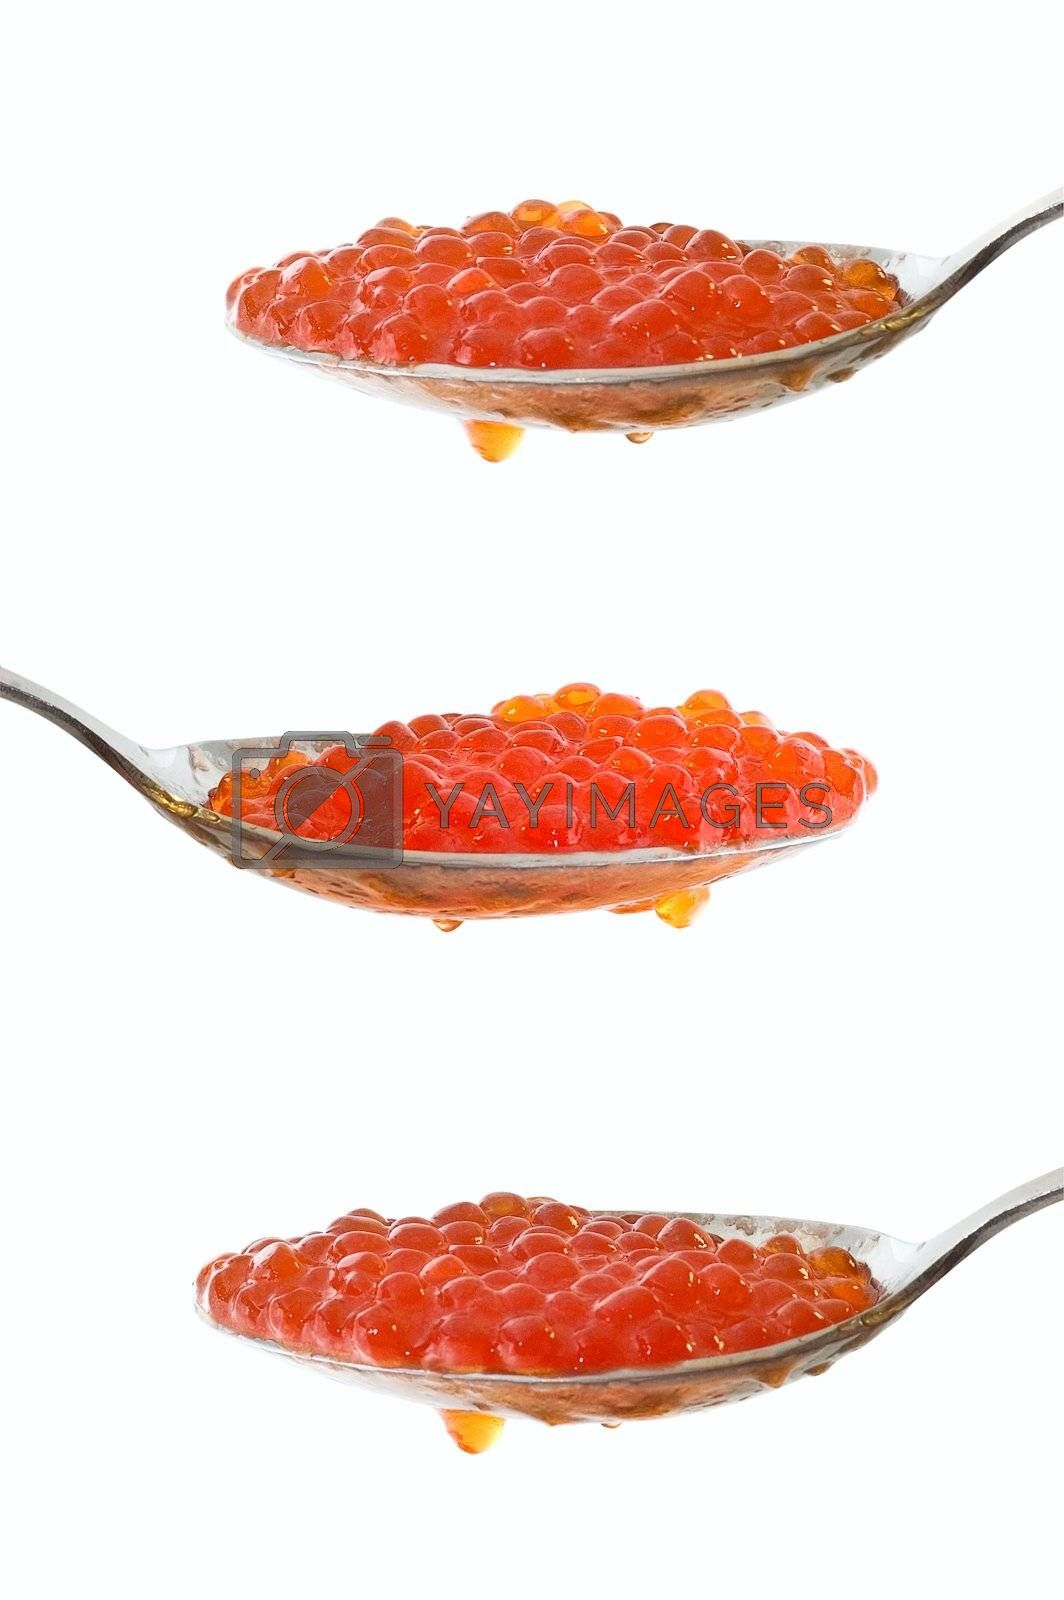 Caviar at spoon on white background